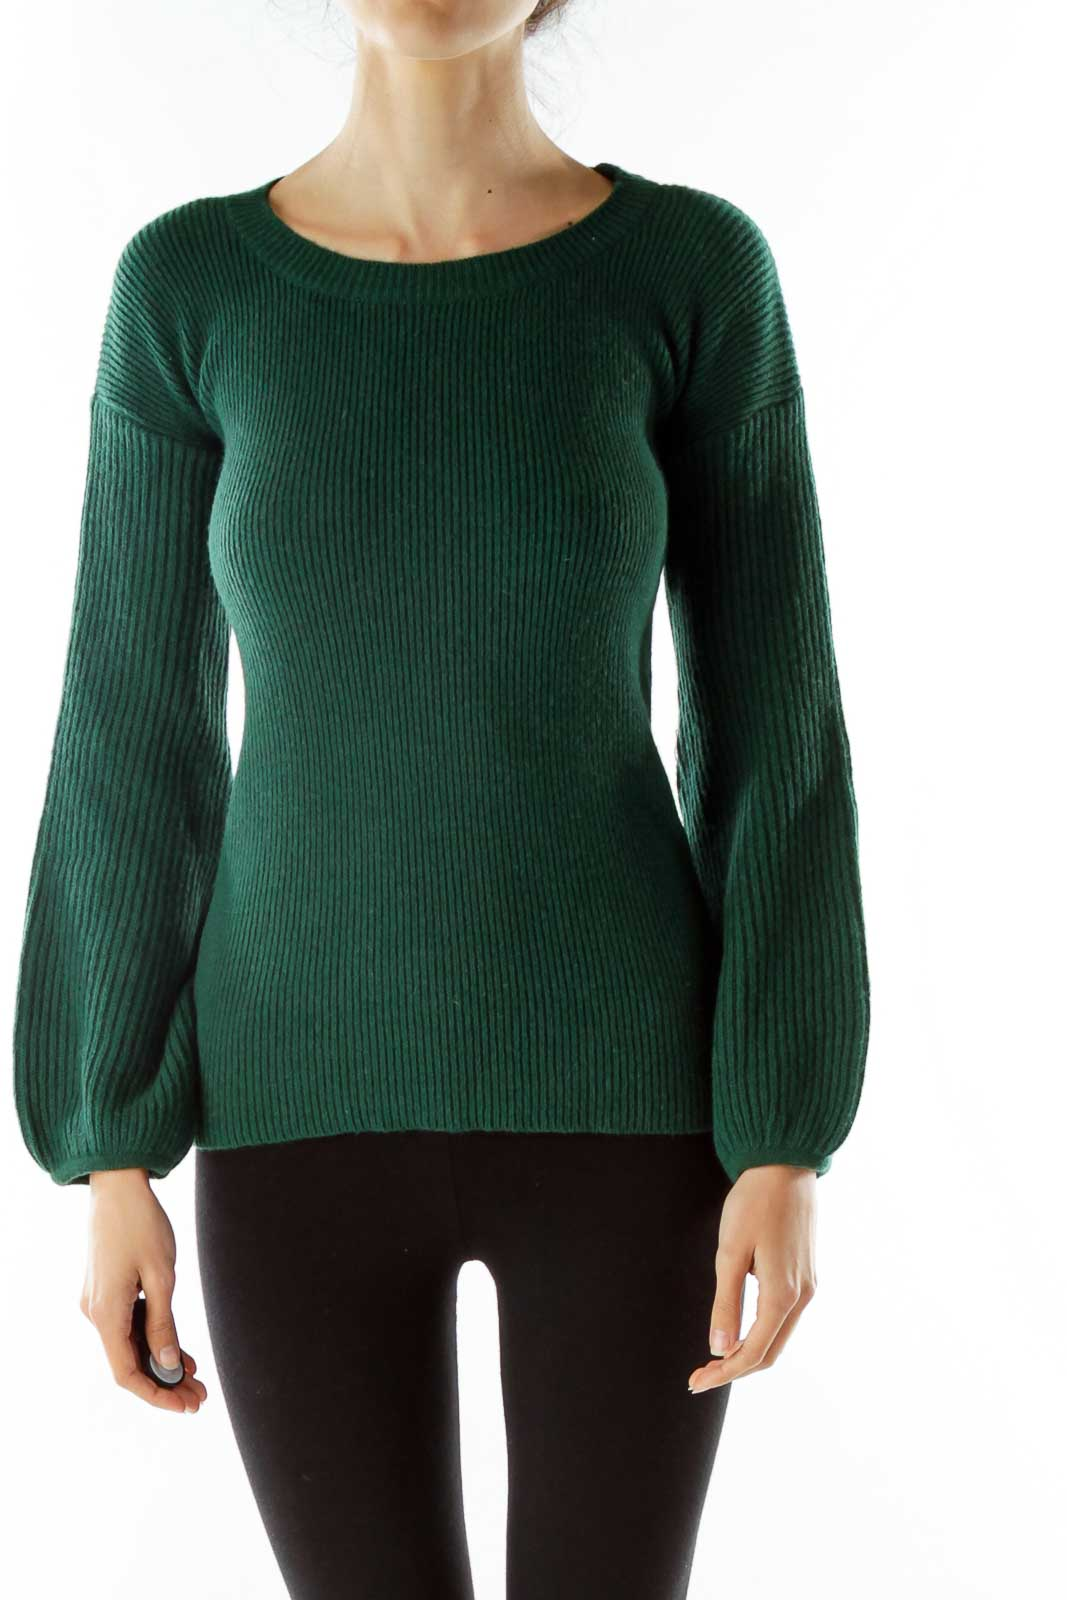 Green Knit Sweater Front